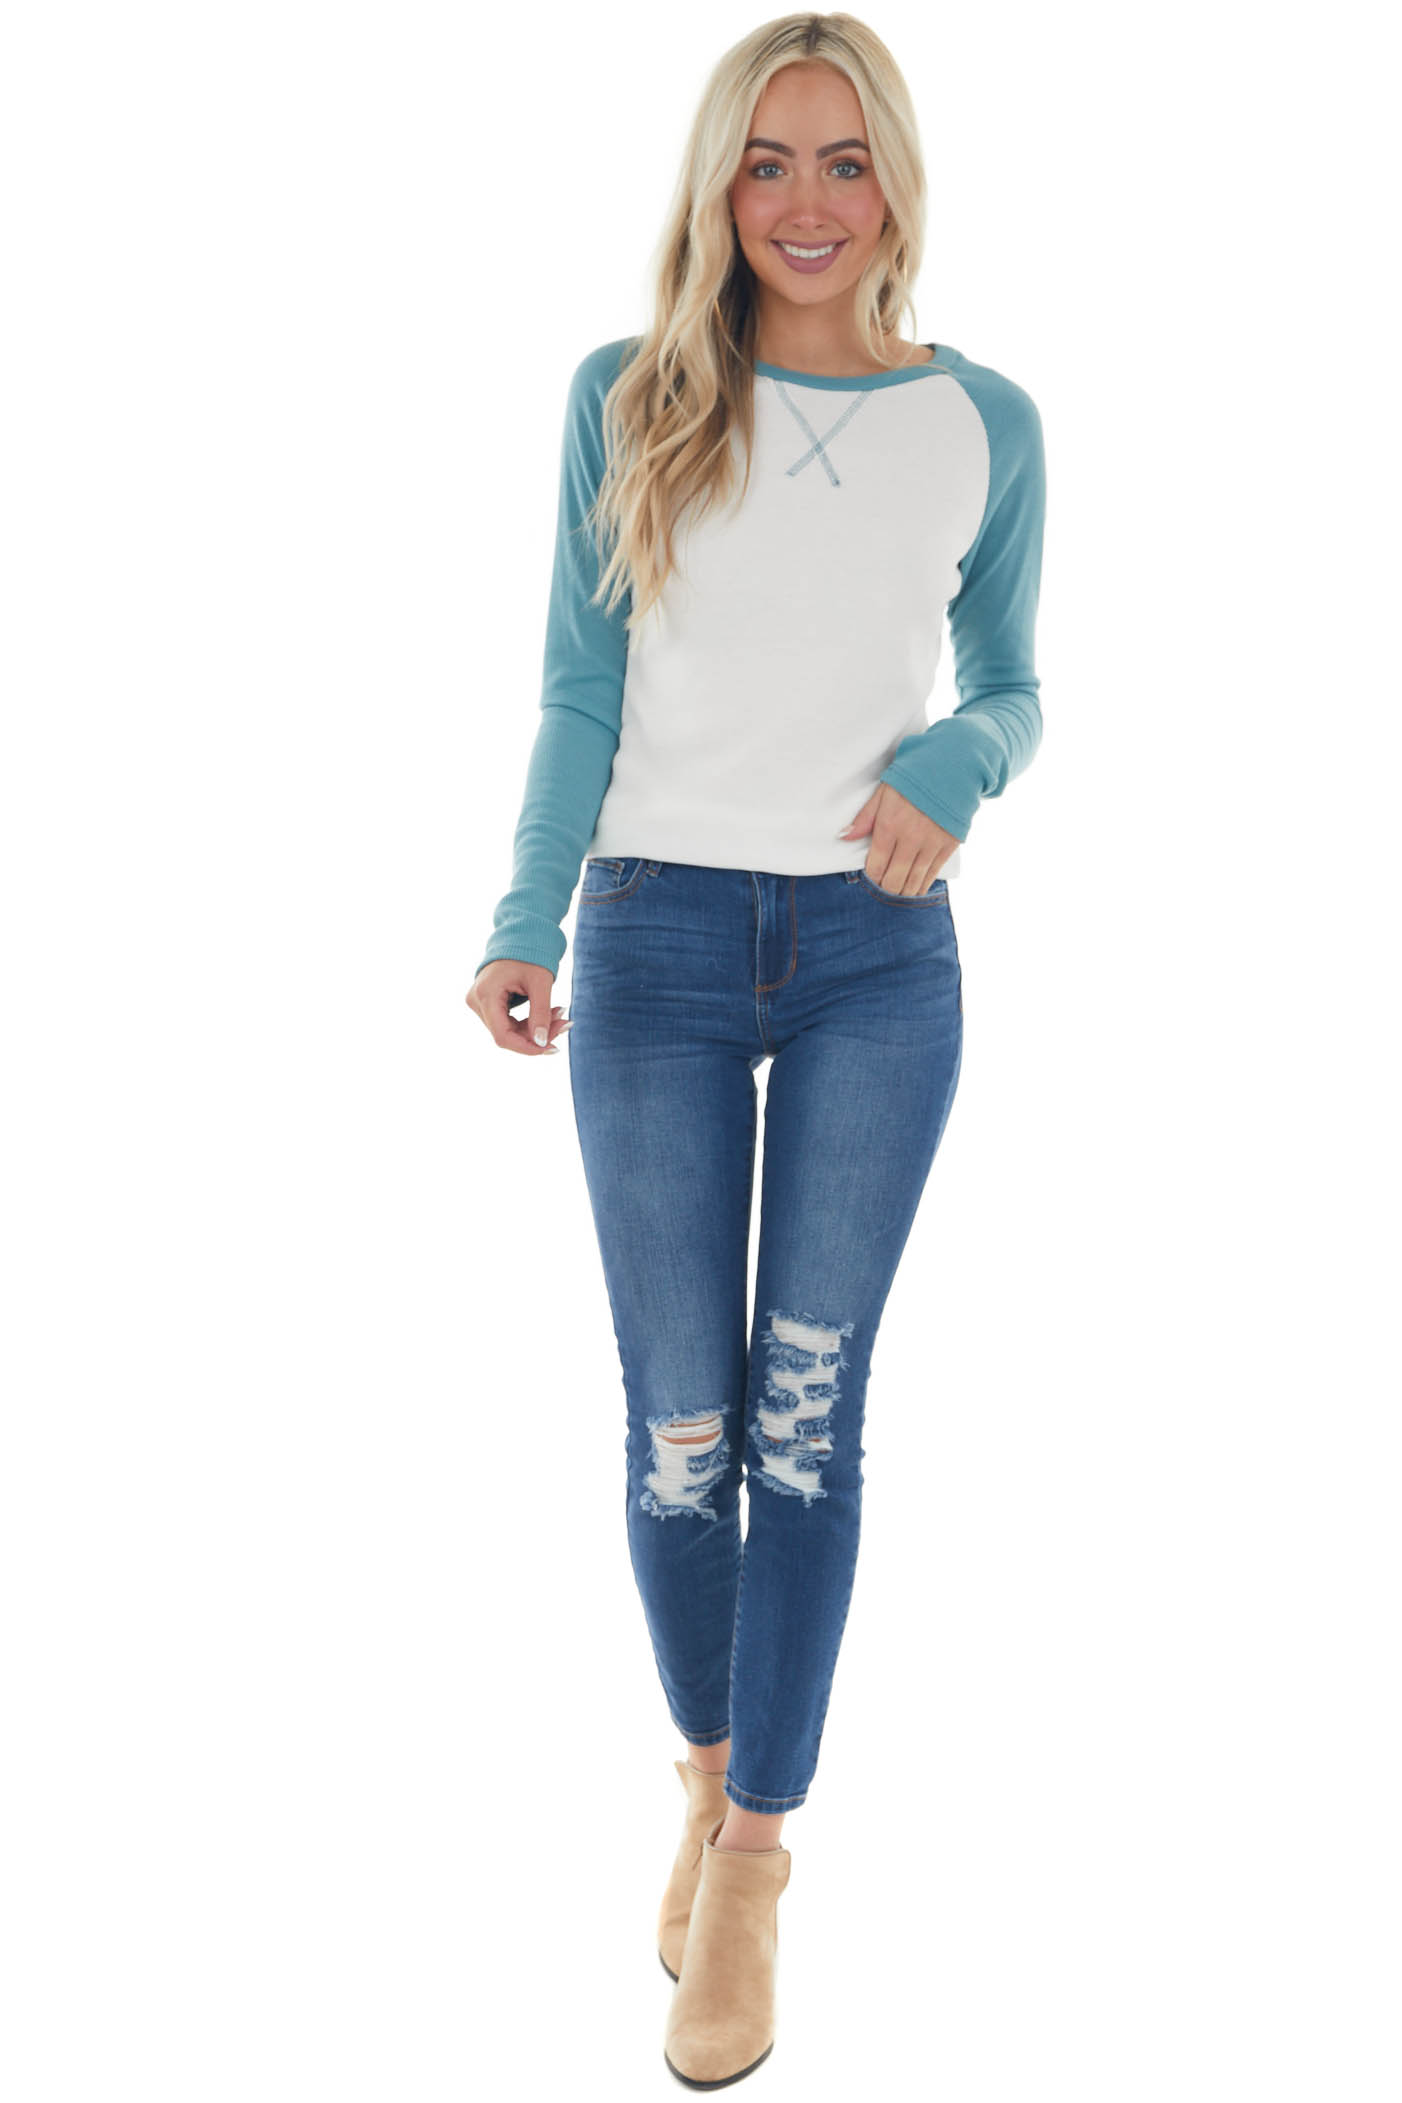 Juniper and Ivory Long Sleeve Top with X Stitch Detail